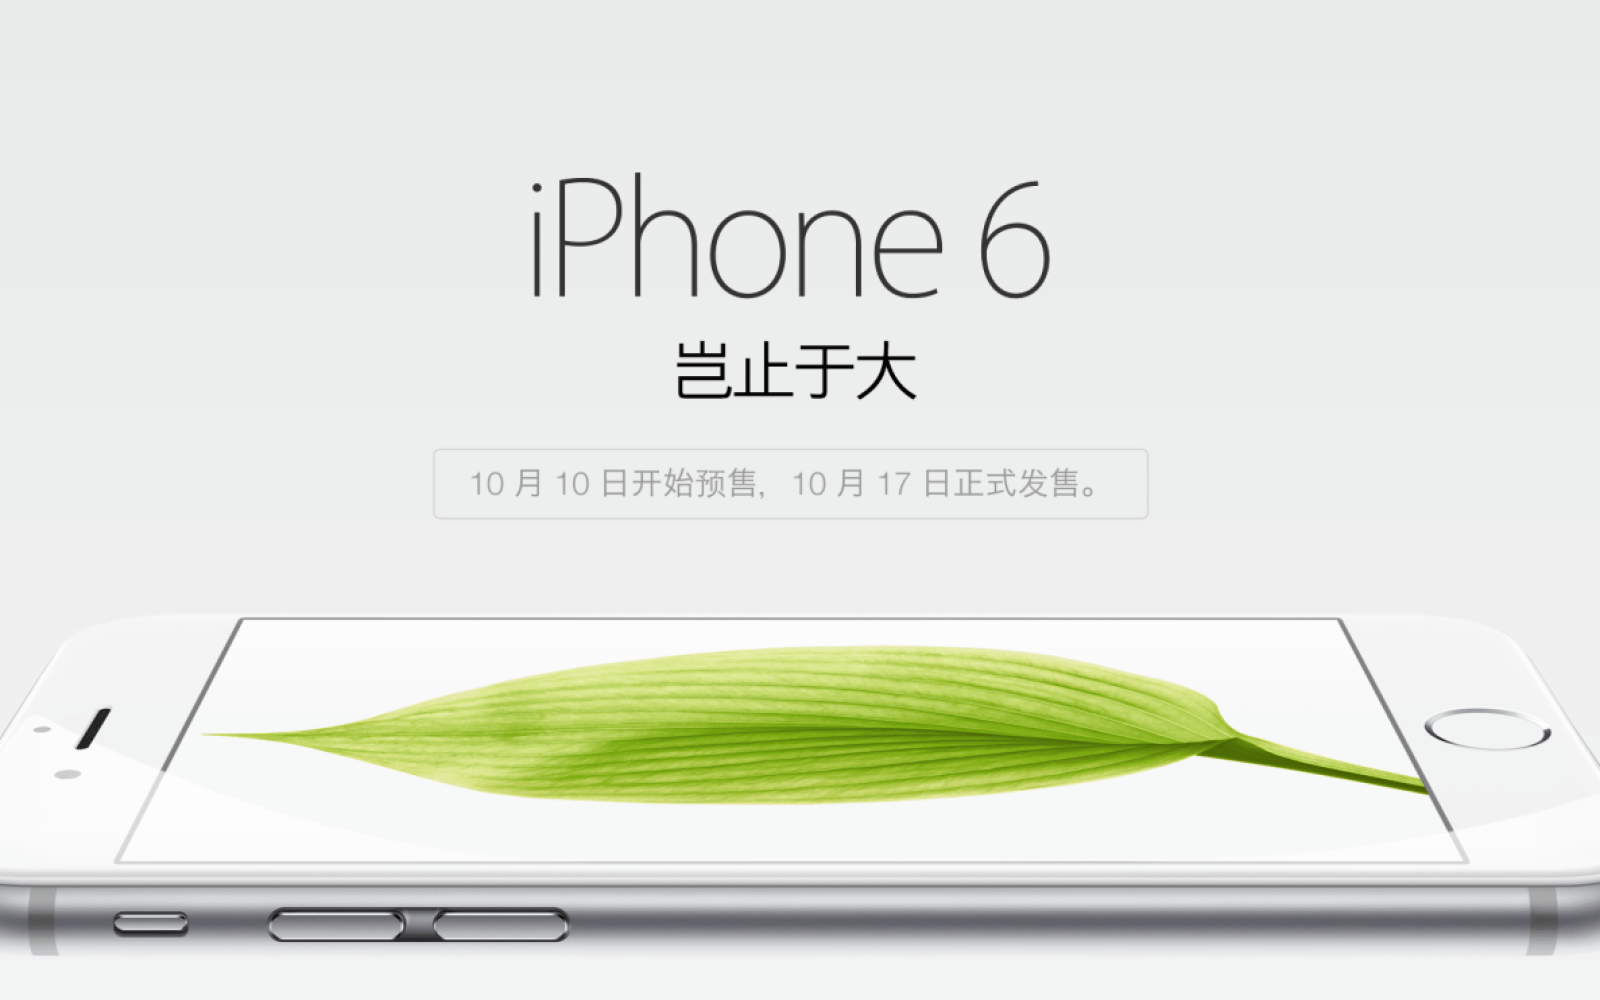 iPhone 6 and iPhone 6 Plus preorders estimated to exceed 20 million units in China